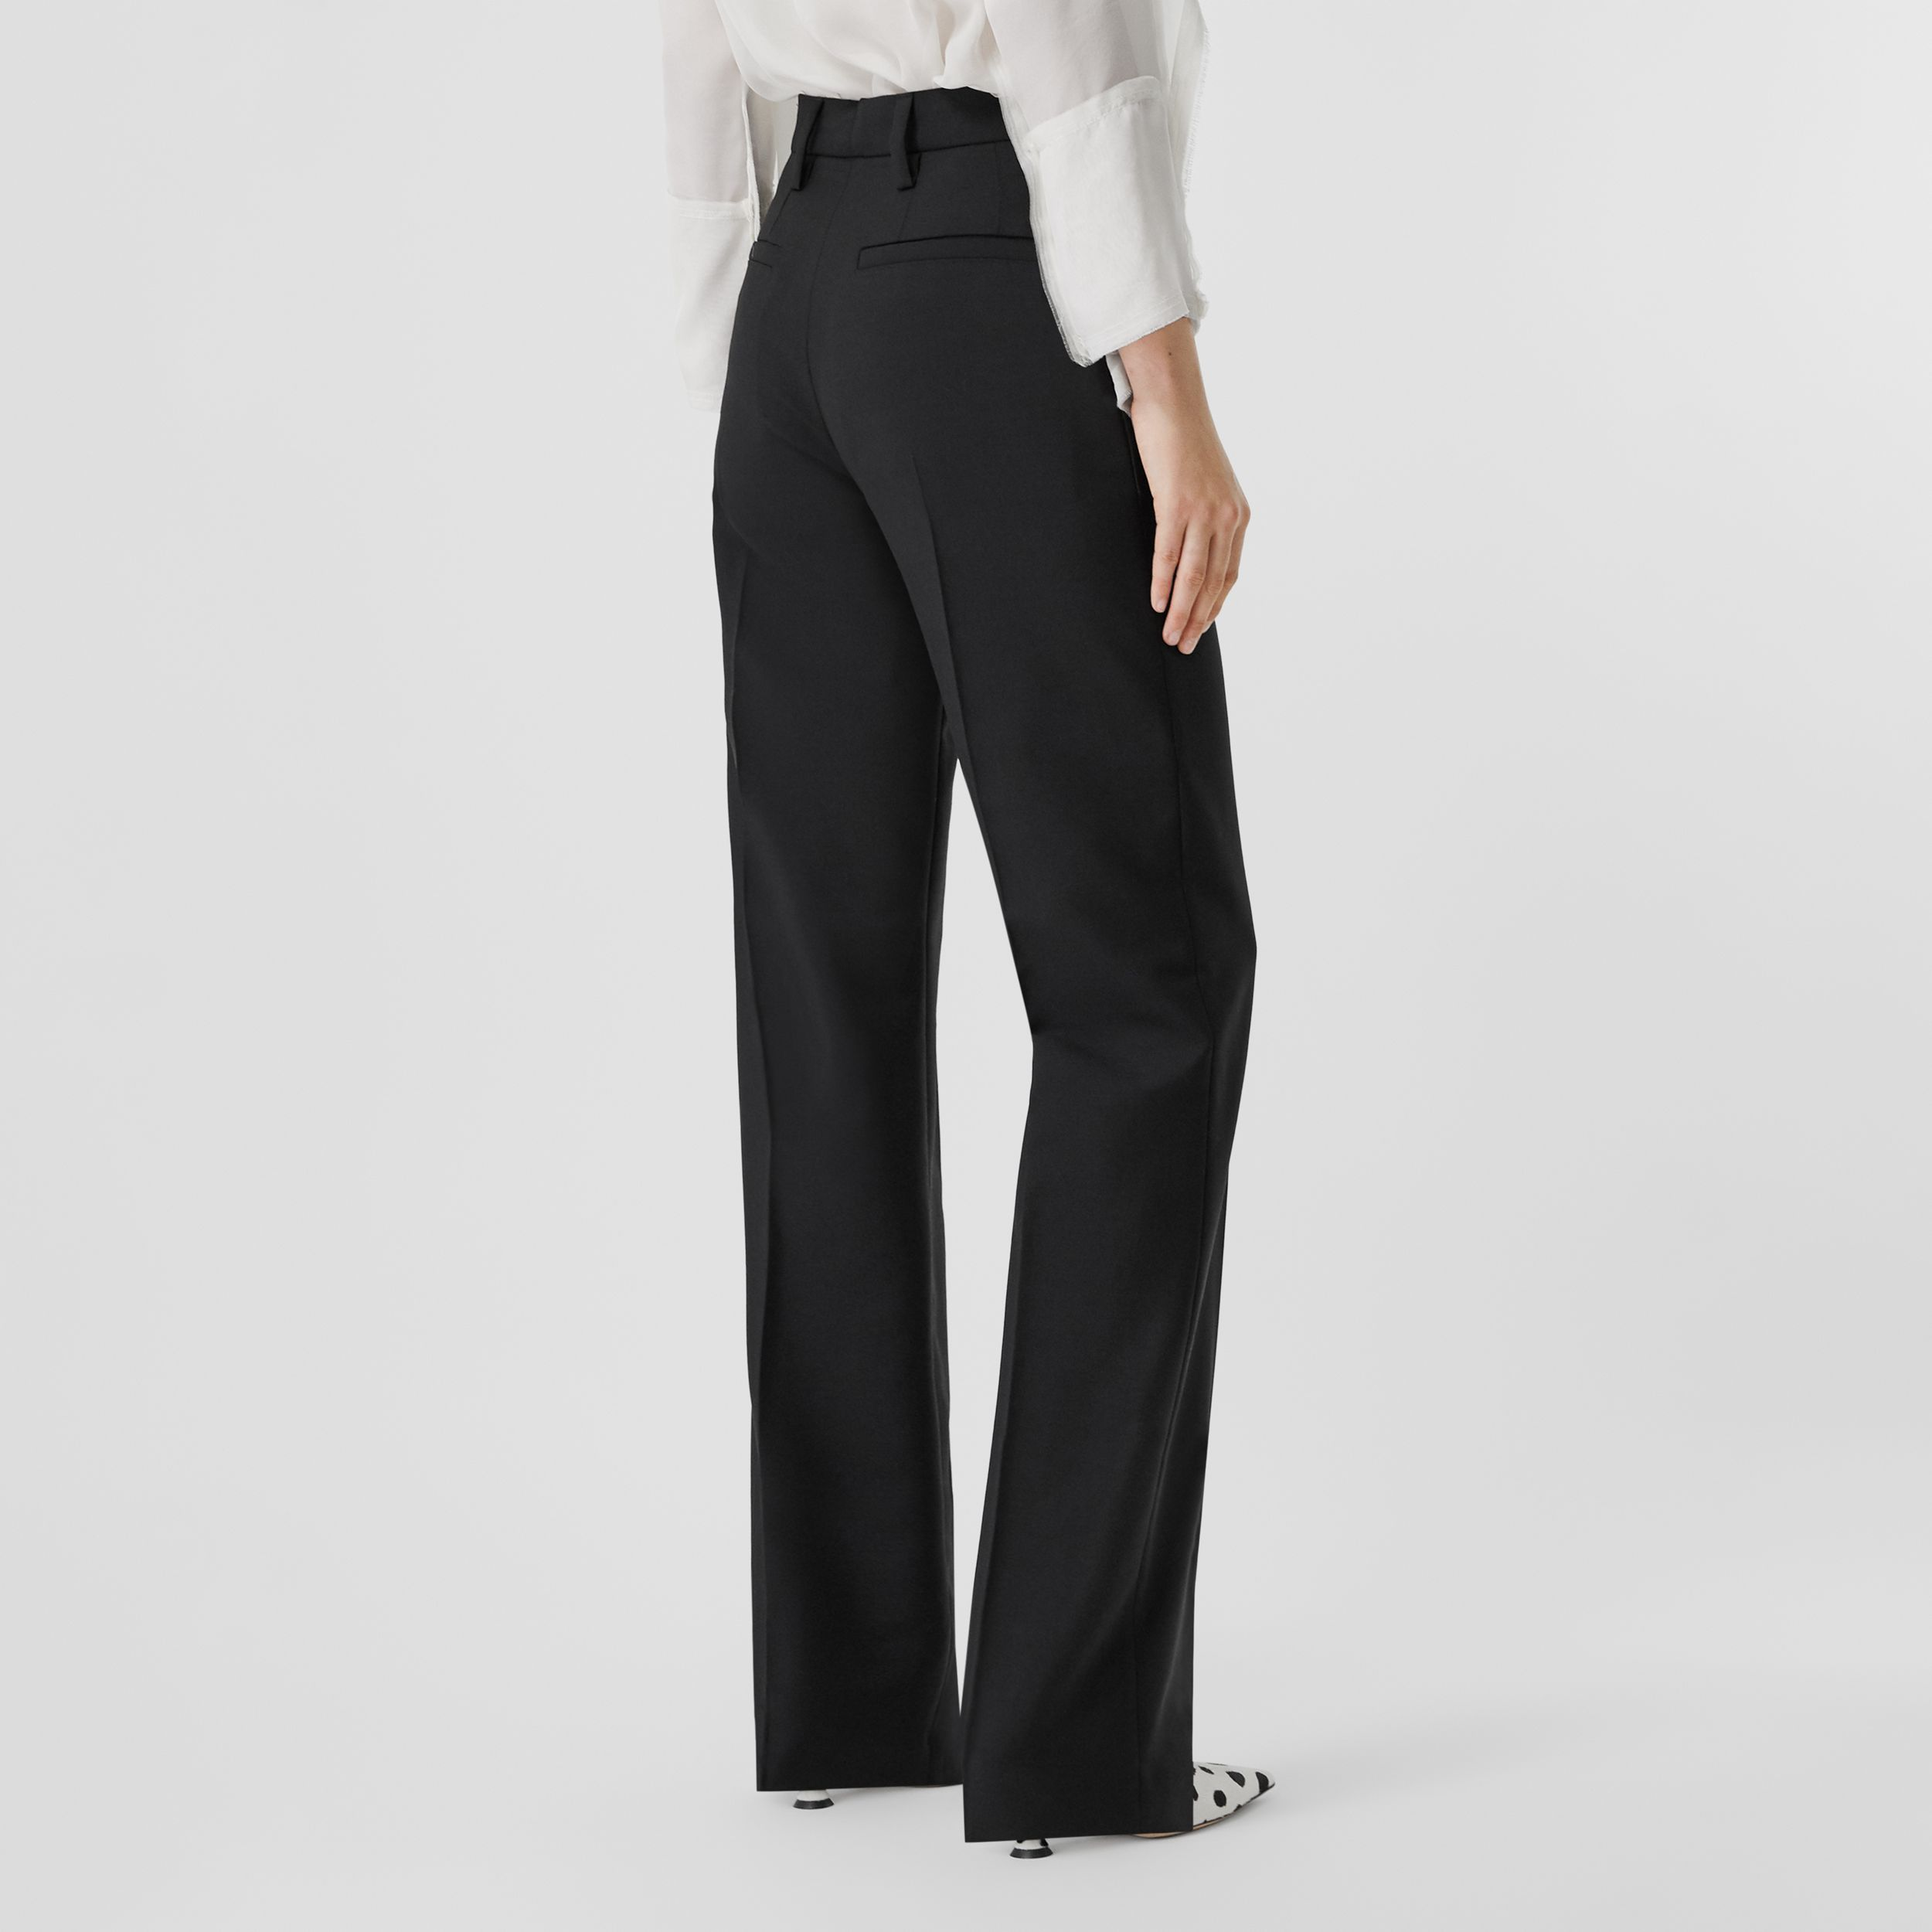 Pocket Detail Wool Mohair Tailored Trousers in Black - Women | Burberry - 3